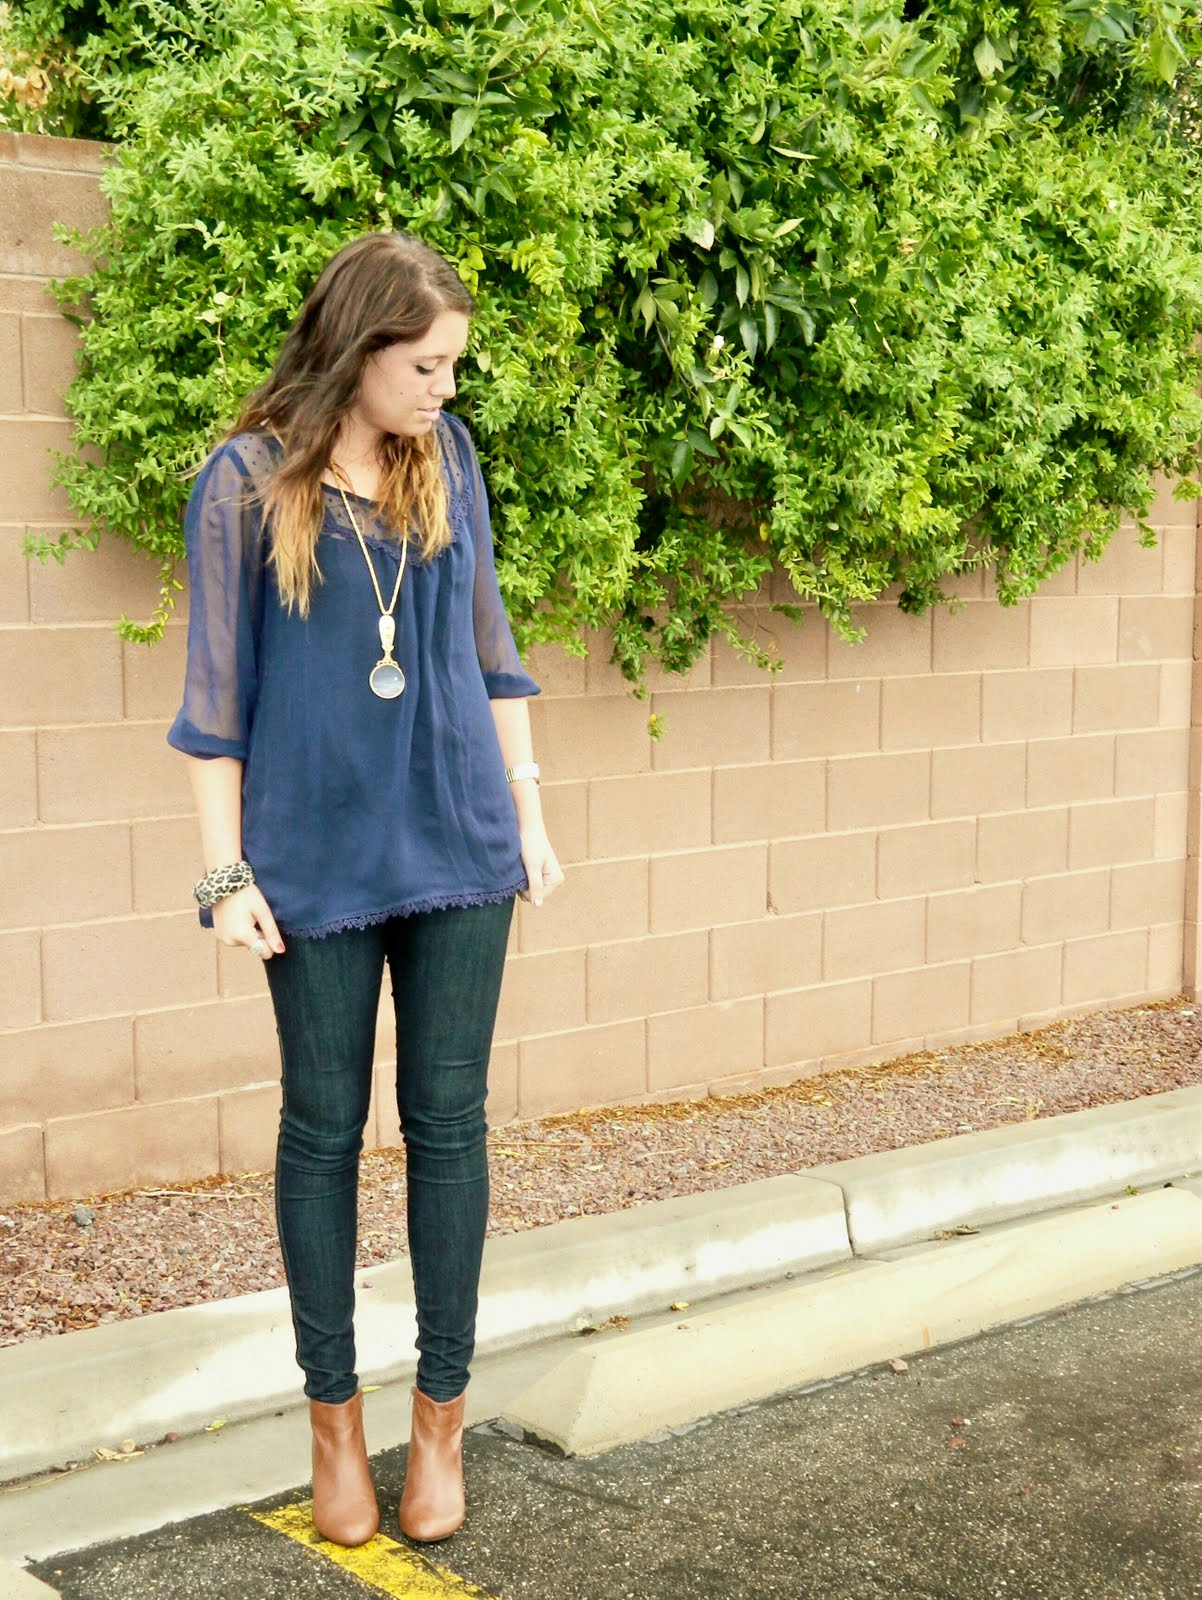 Blue Top, Skinny Jeans, Necklace